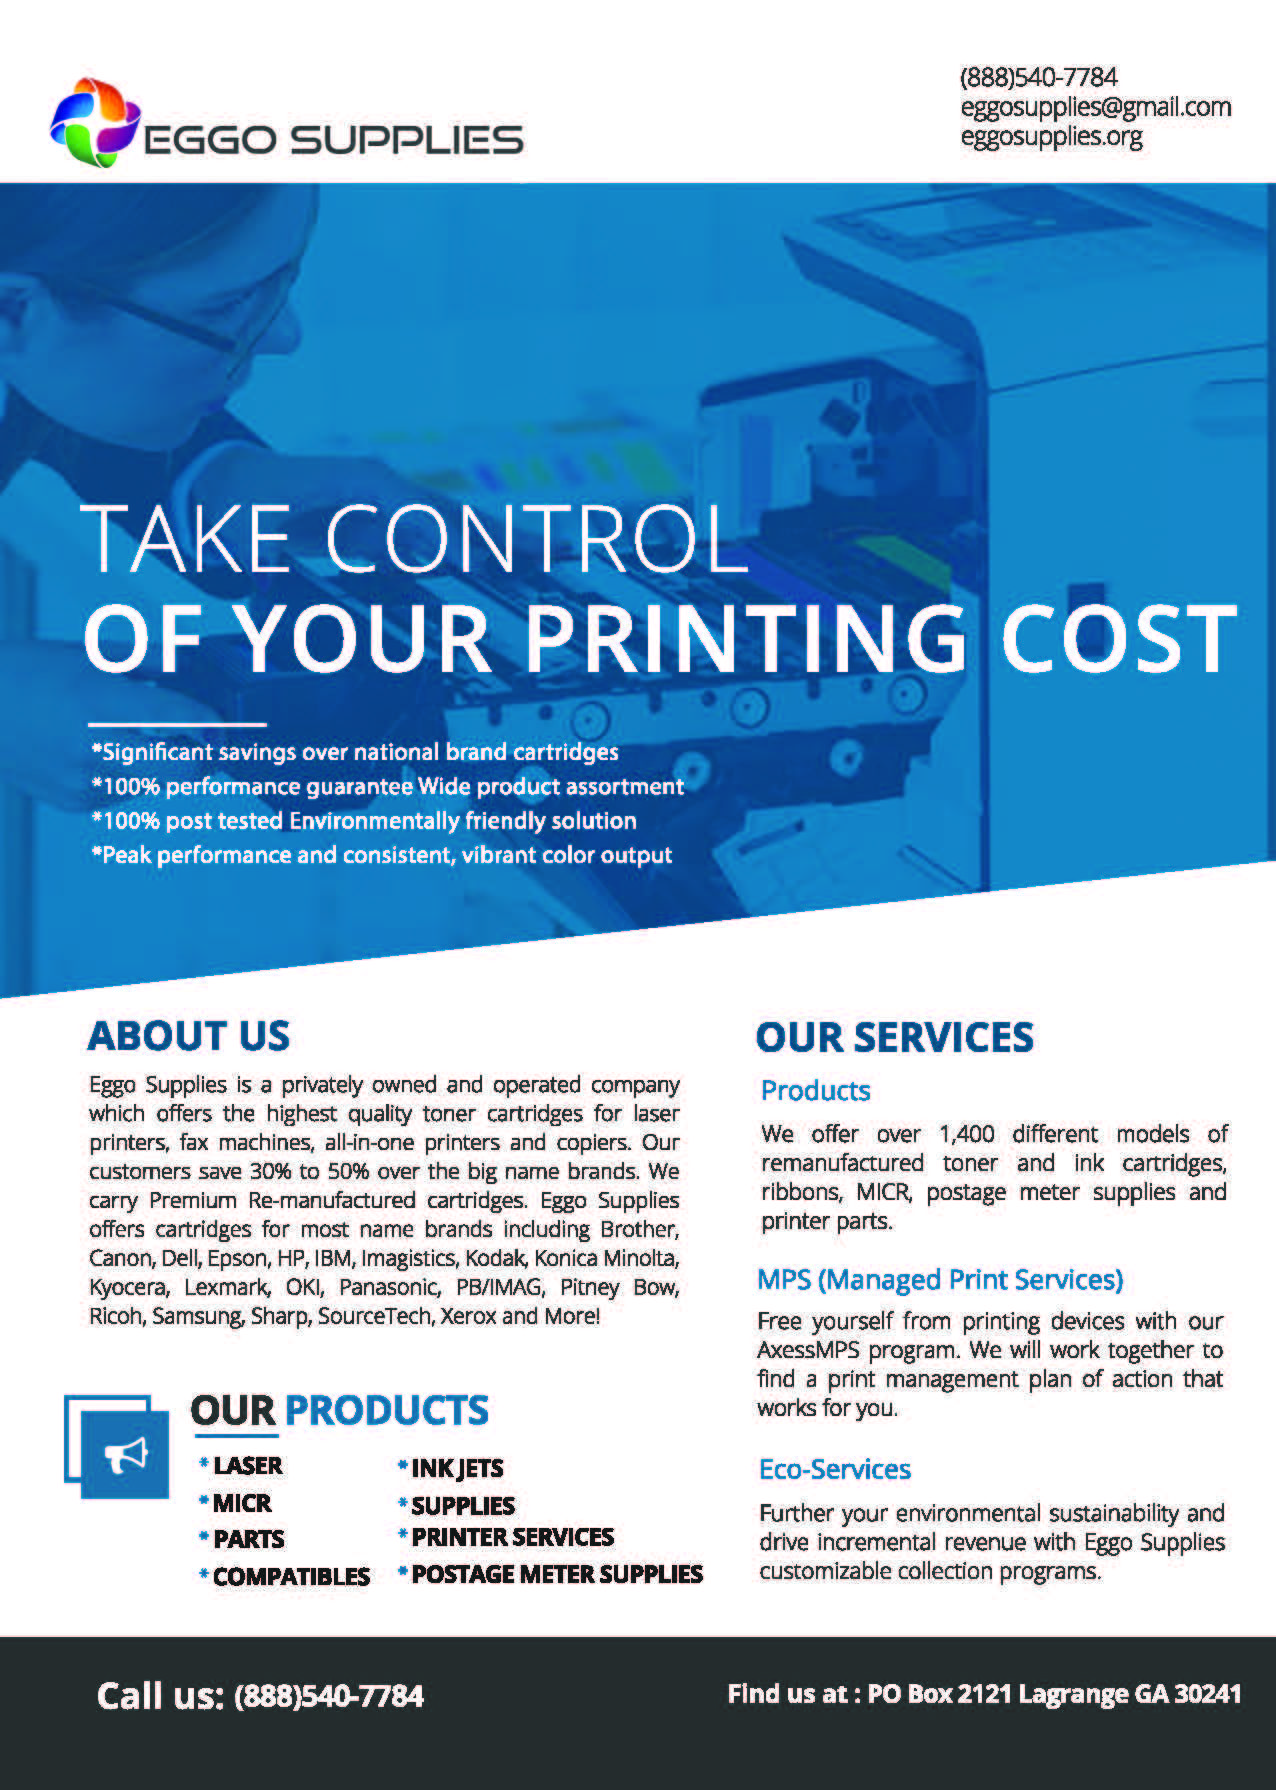 Pin By Eggo Supplies On Eggo Supplies Printing Costs Solutions